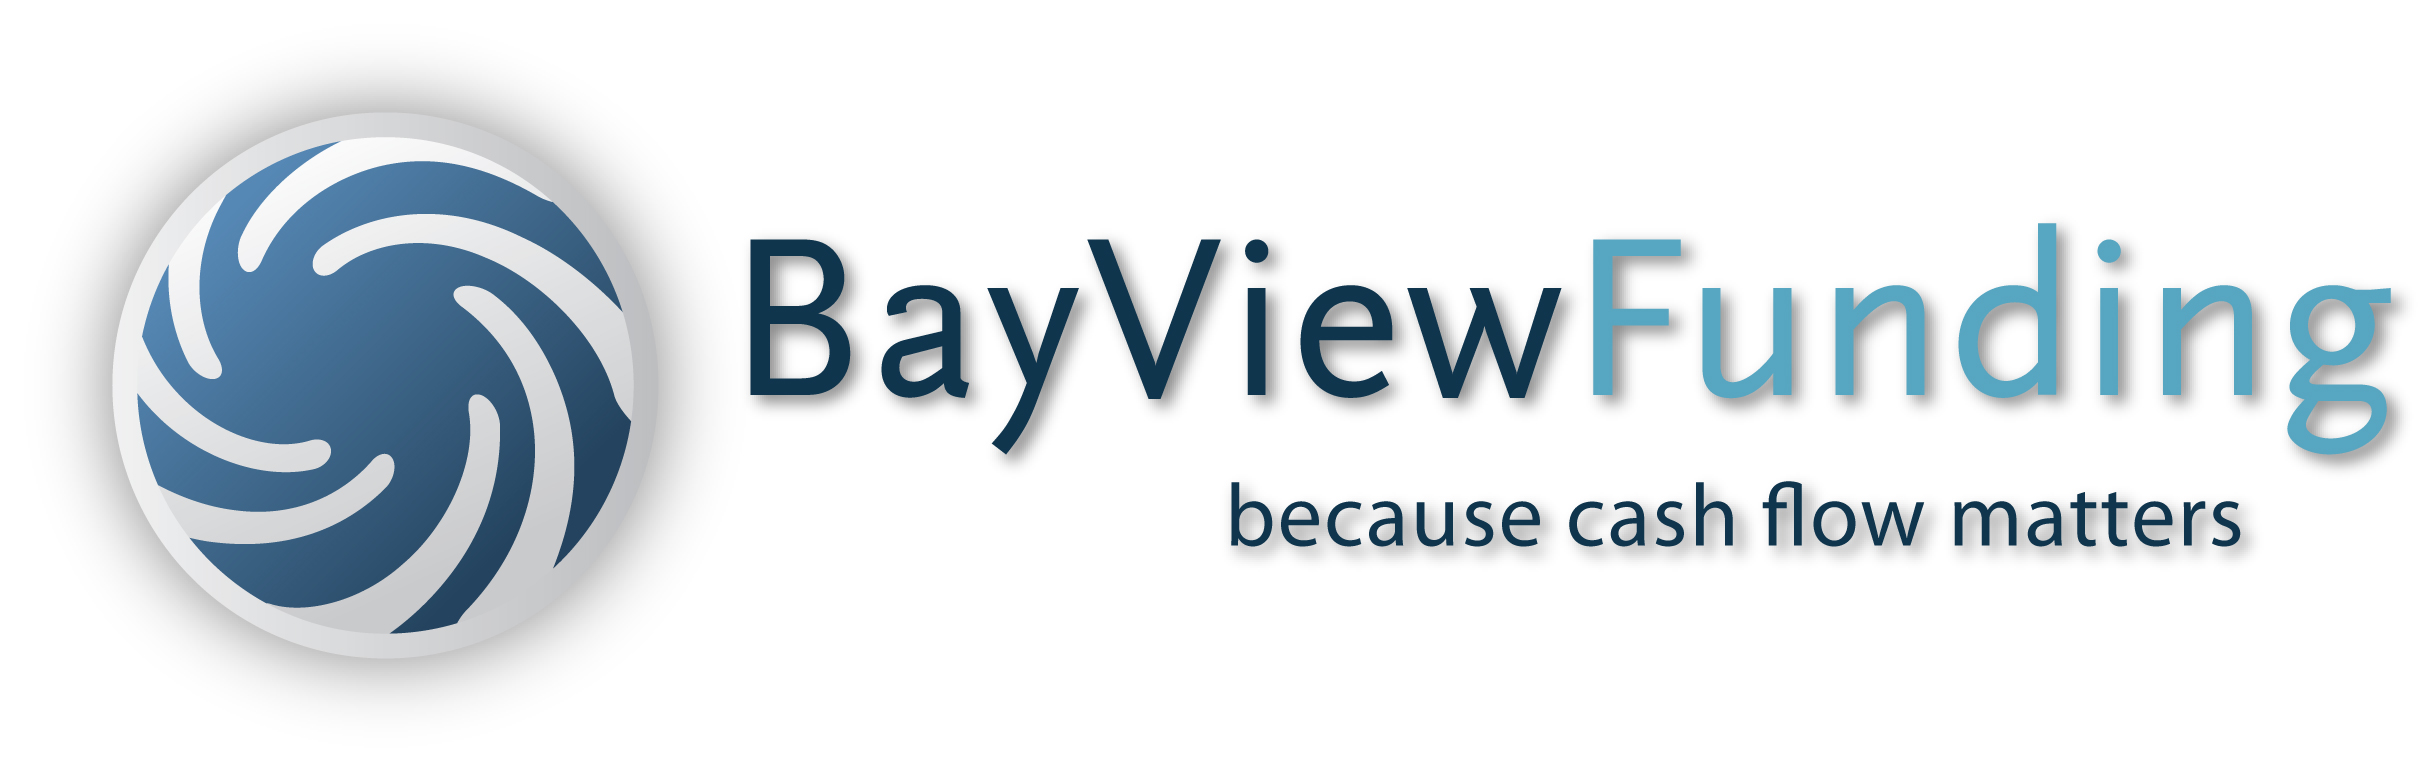 Bay View Funding Logo